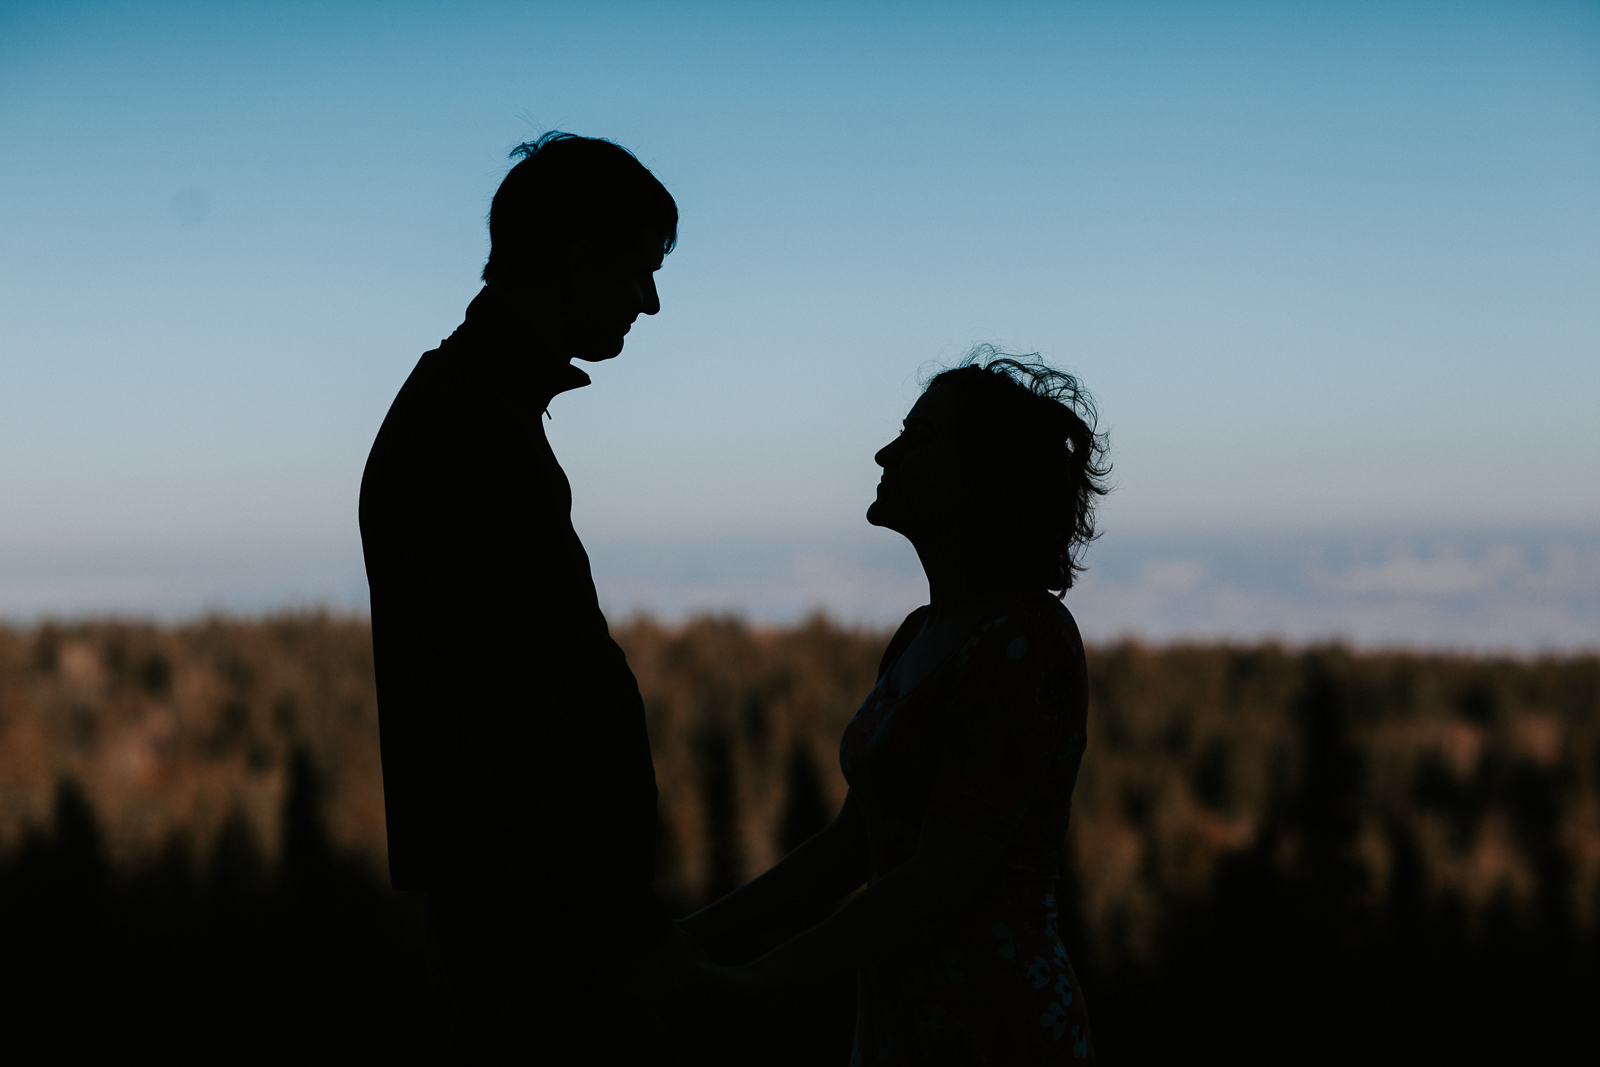 Silhouette of loving couple with sky and trees behind them